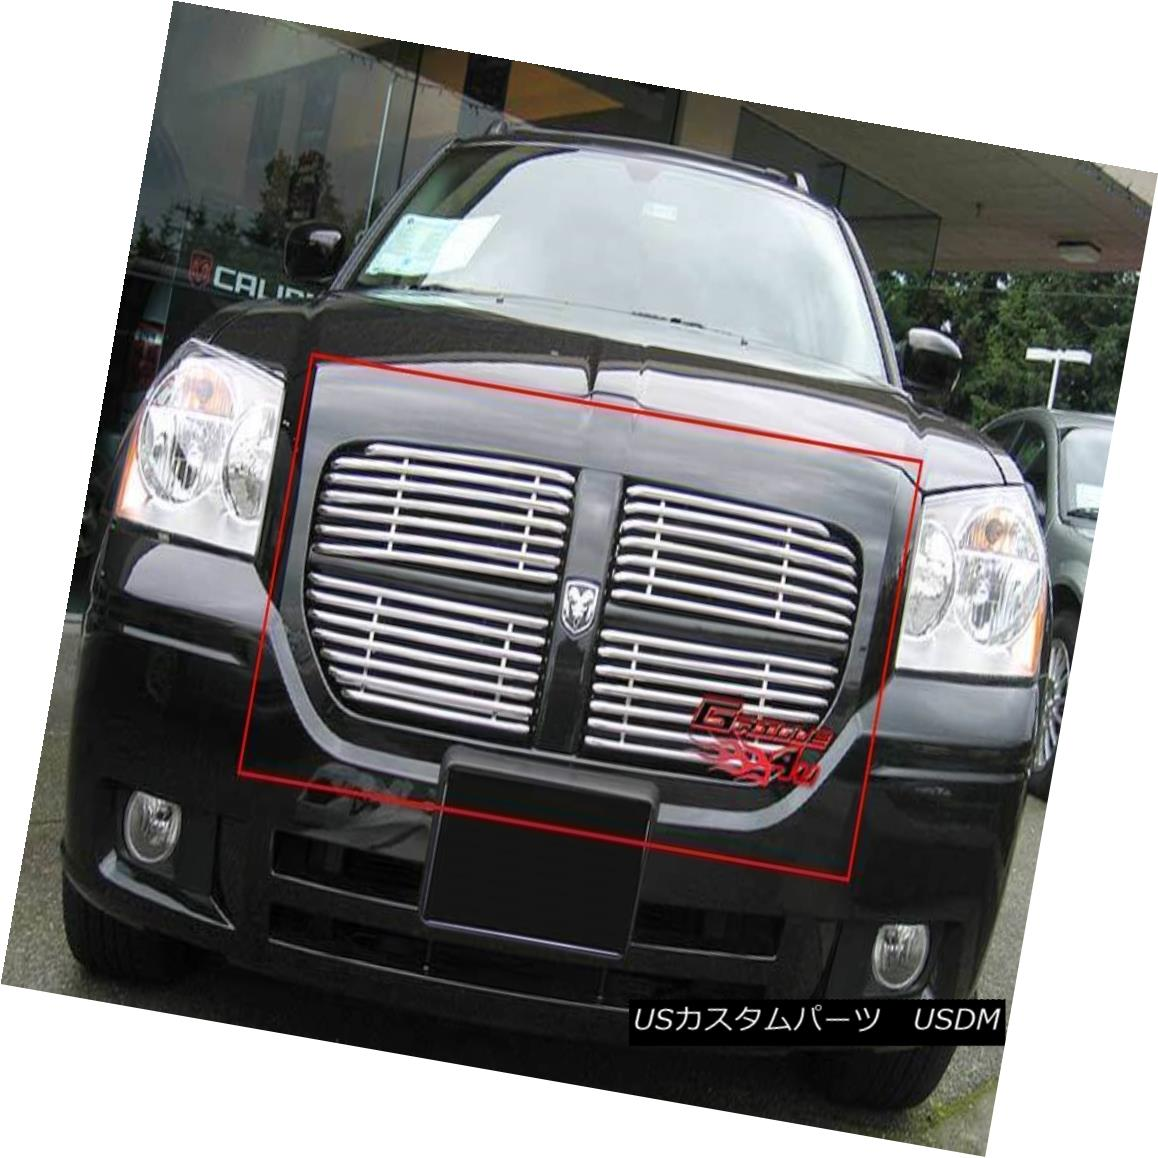 グリル Fits 2005-2007 Dodge Magnum Stainless Steel Tubular Grille 2005-2007 Dodge Magnumステンレス鋼管のグリルに適合